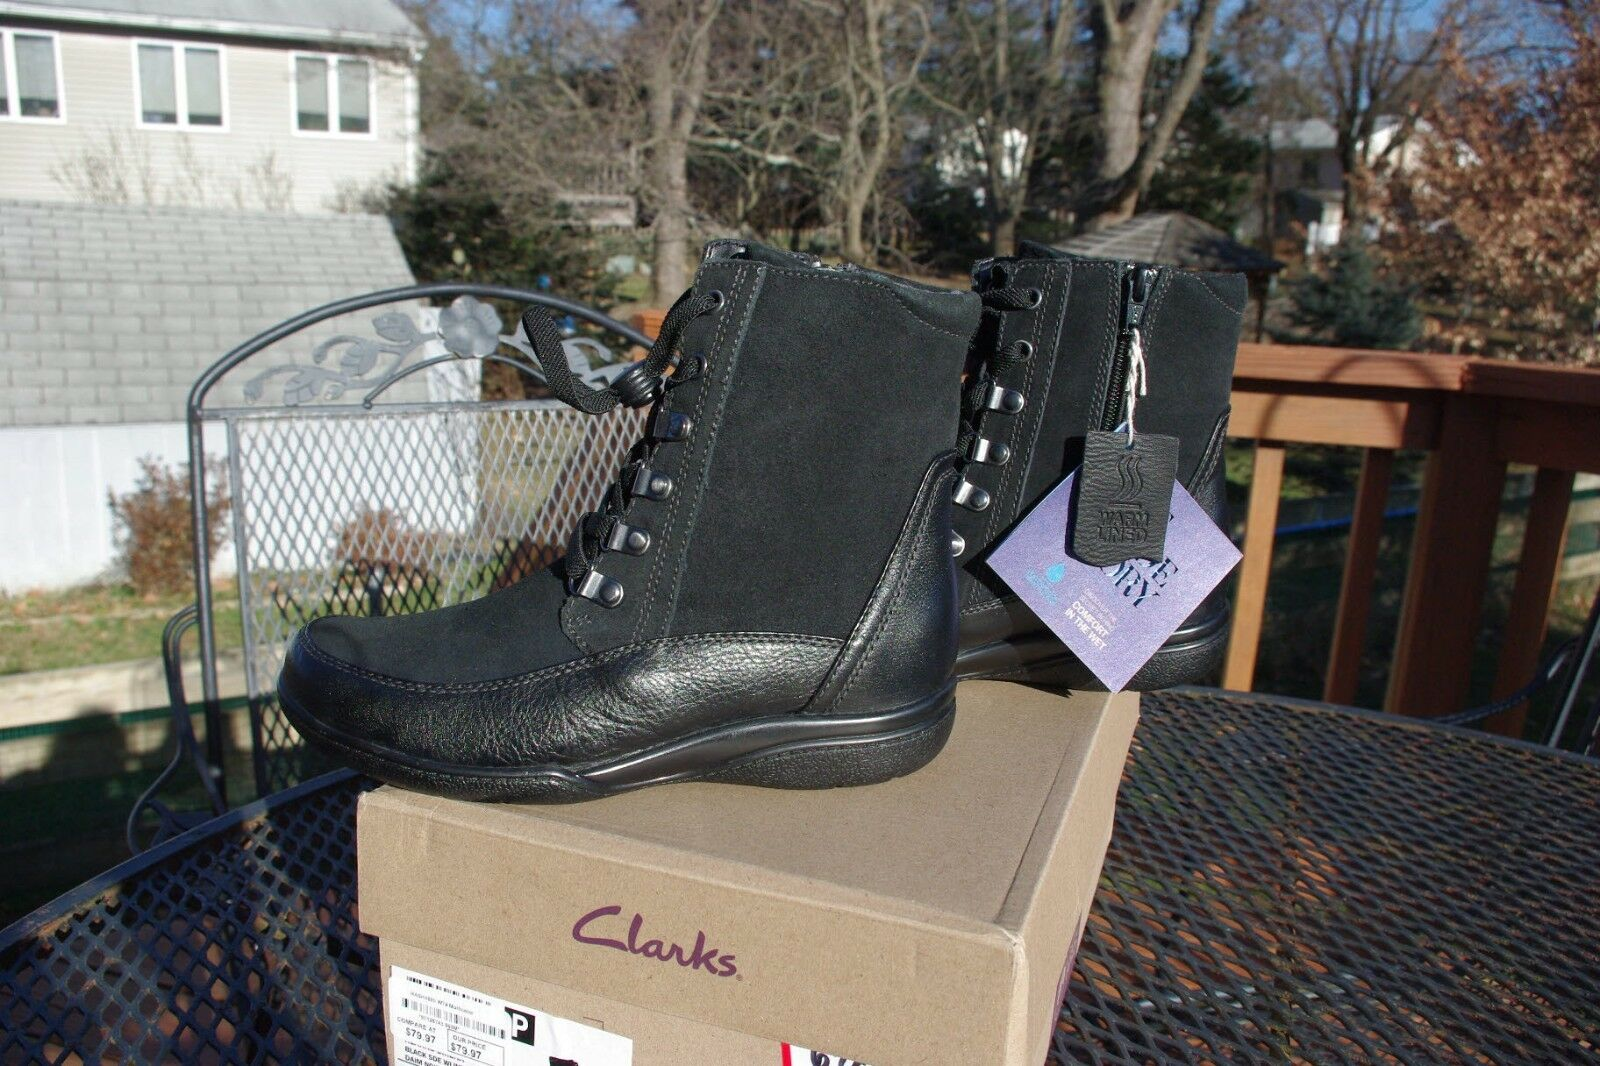 NIB Clark's Ladies Kearns Sirena Lace Up Winter Ankle Boots Lined Warm 6 1 2 M